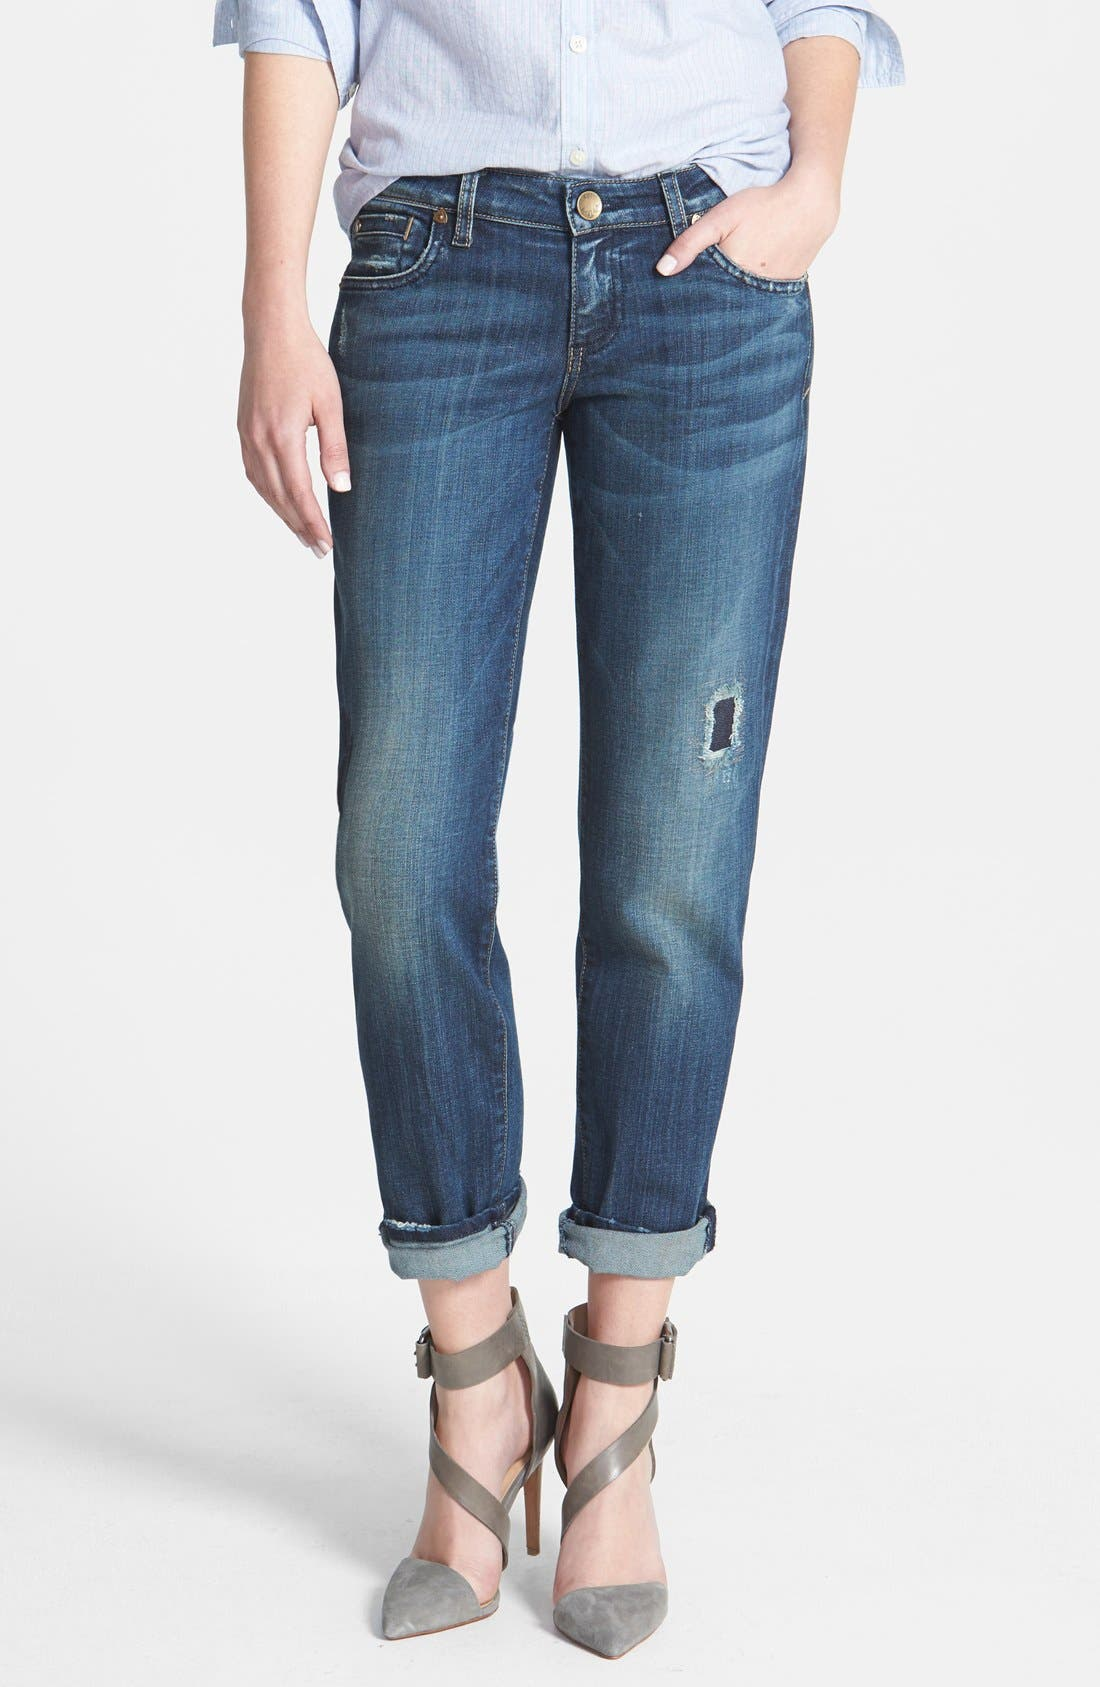 Alternate Image 1 Selected - KUT from the Kloth 'Catherine' Destructed Slim Boyfriend Jeans (Dimple)